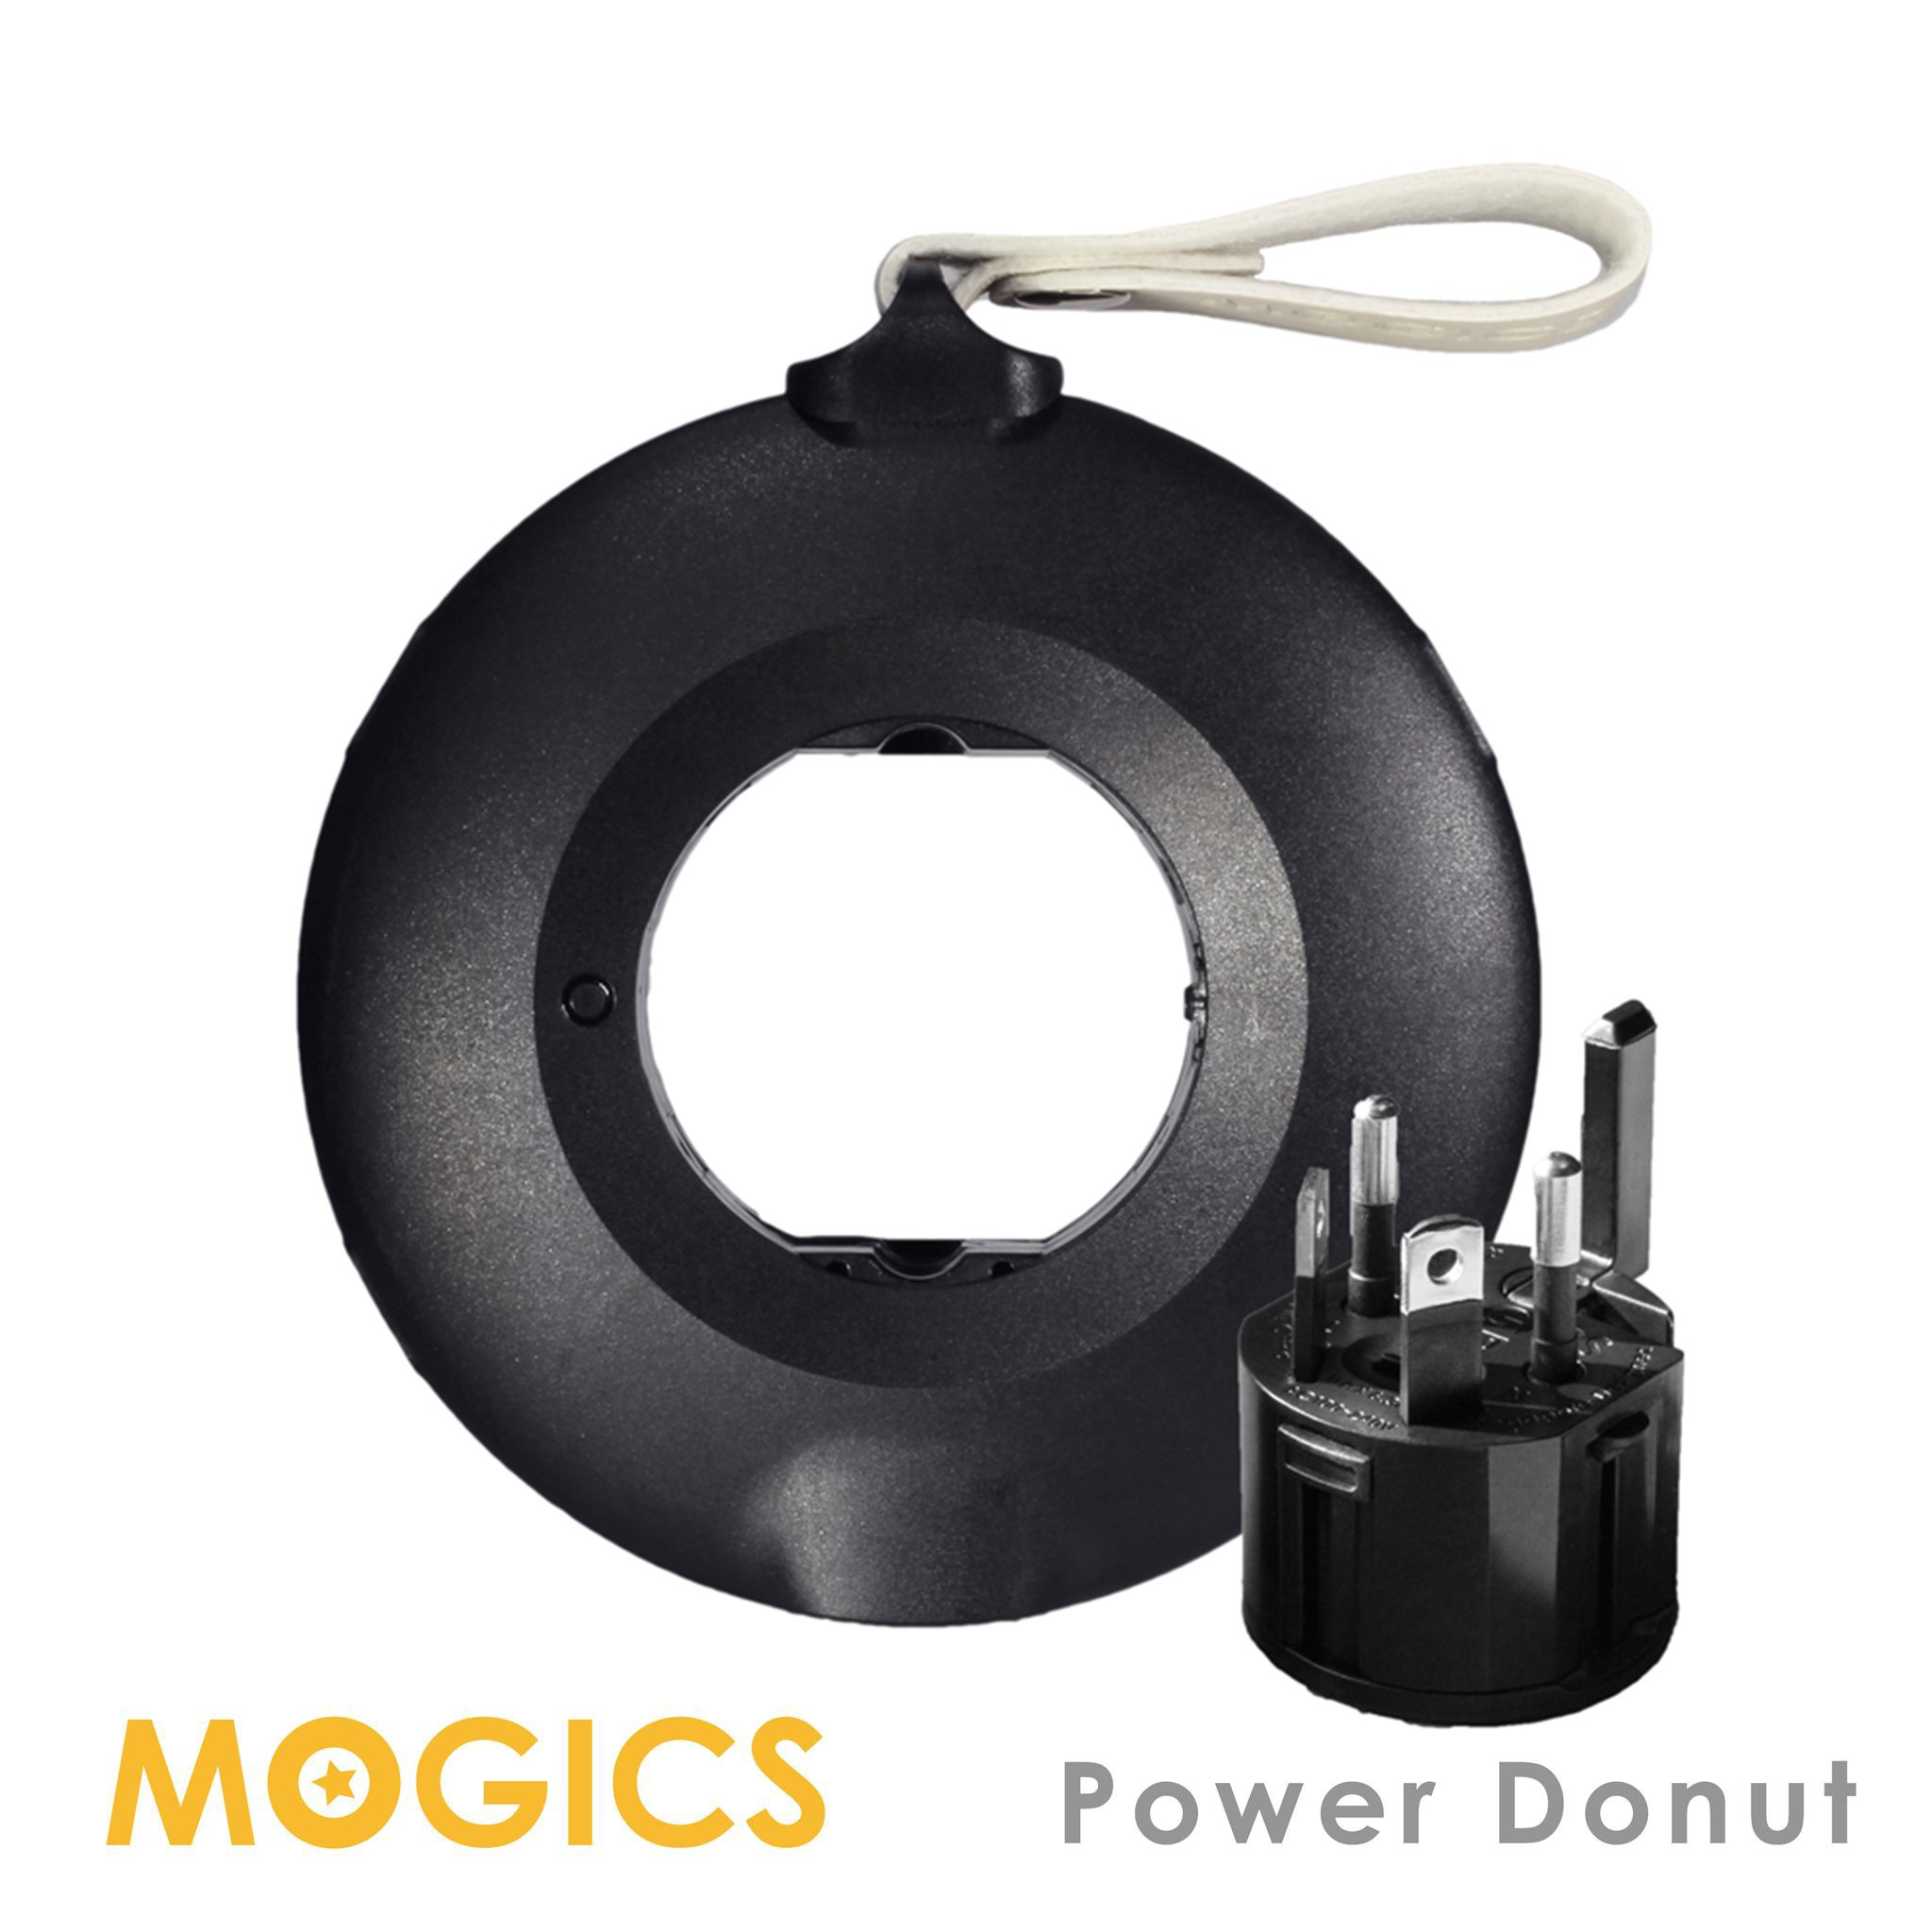 MOGICS Donut-Travel Power Strip- Black